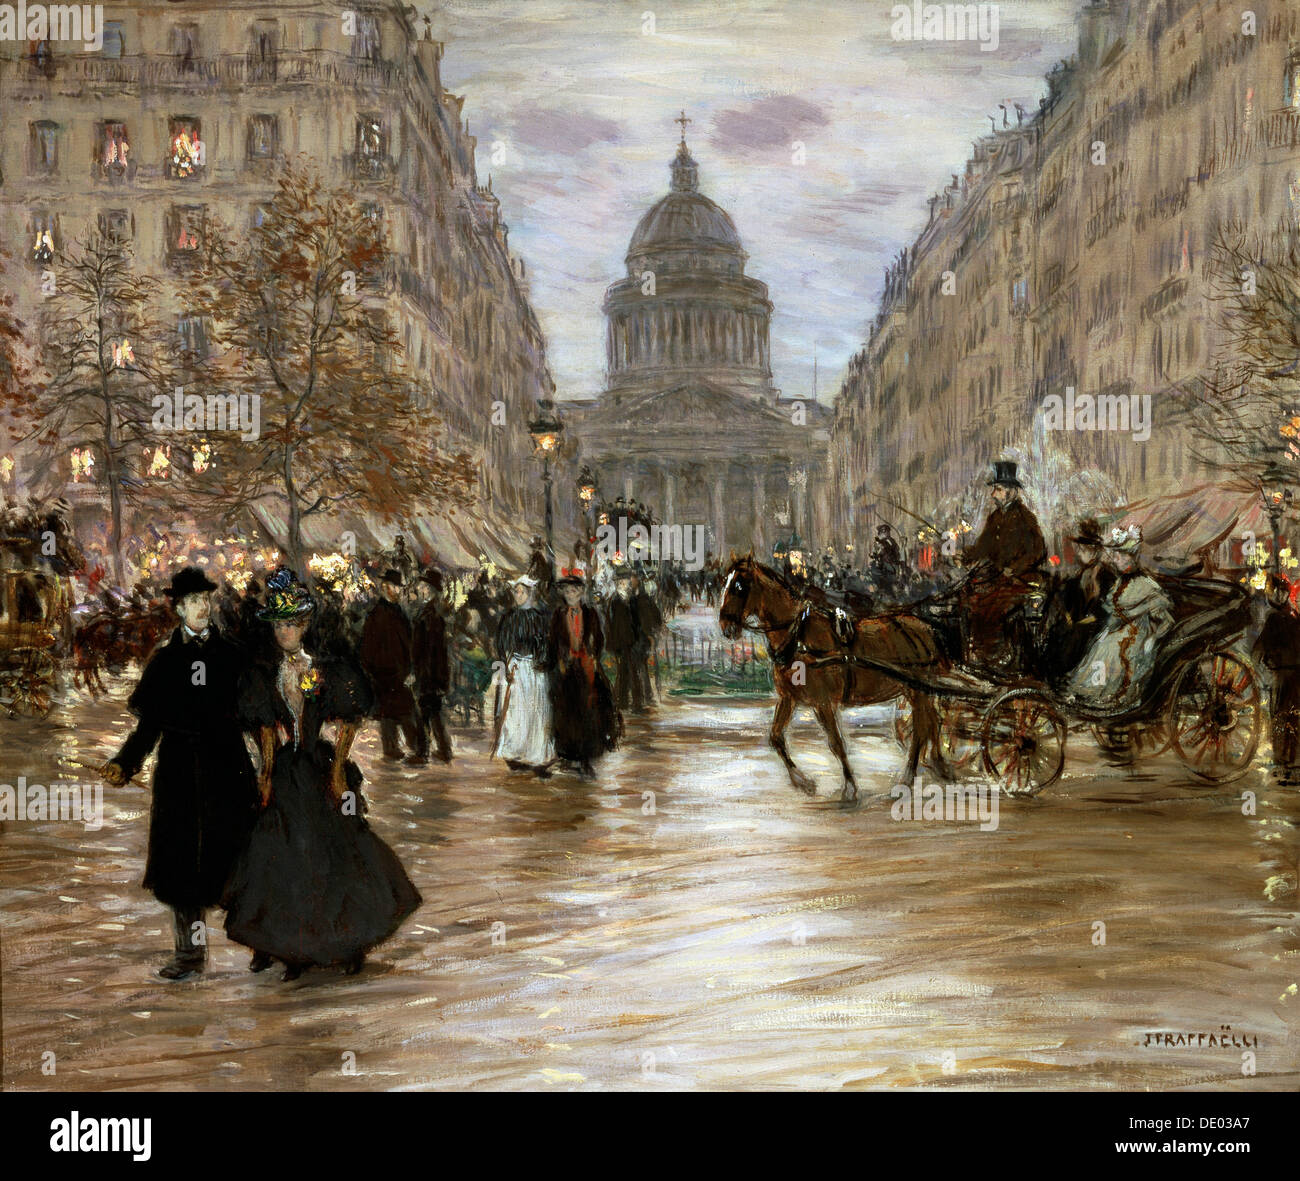 'Boulevard Saint-Michel', late 19th or early 20th century.  Artist: Jean Francois Raffaelli - Stock Image